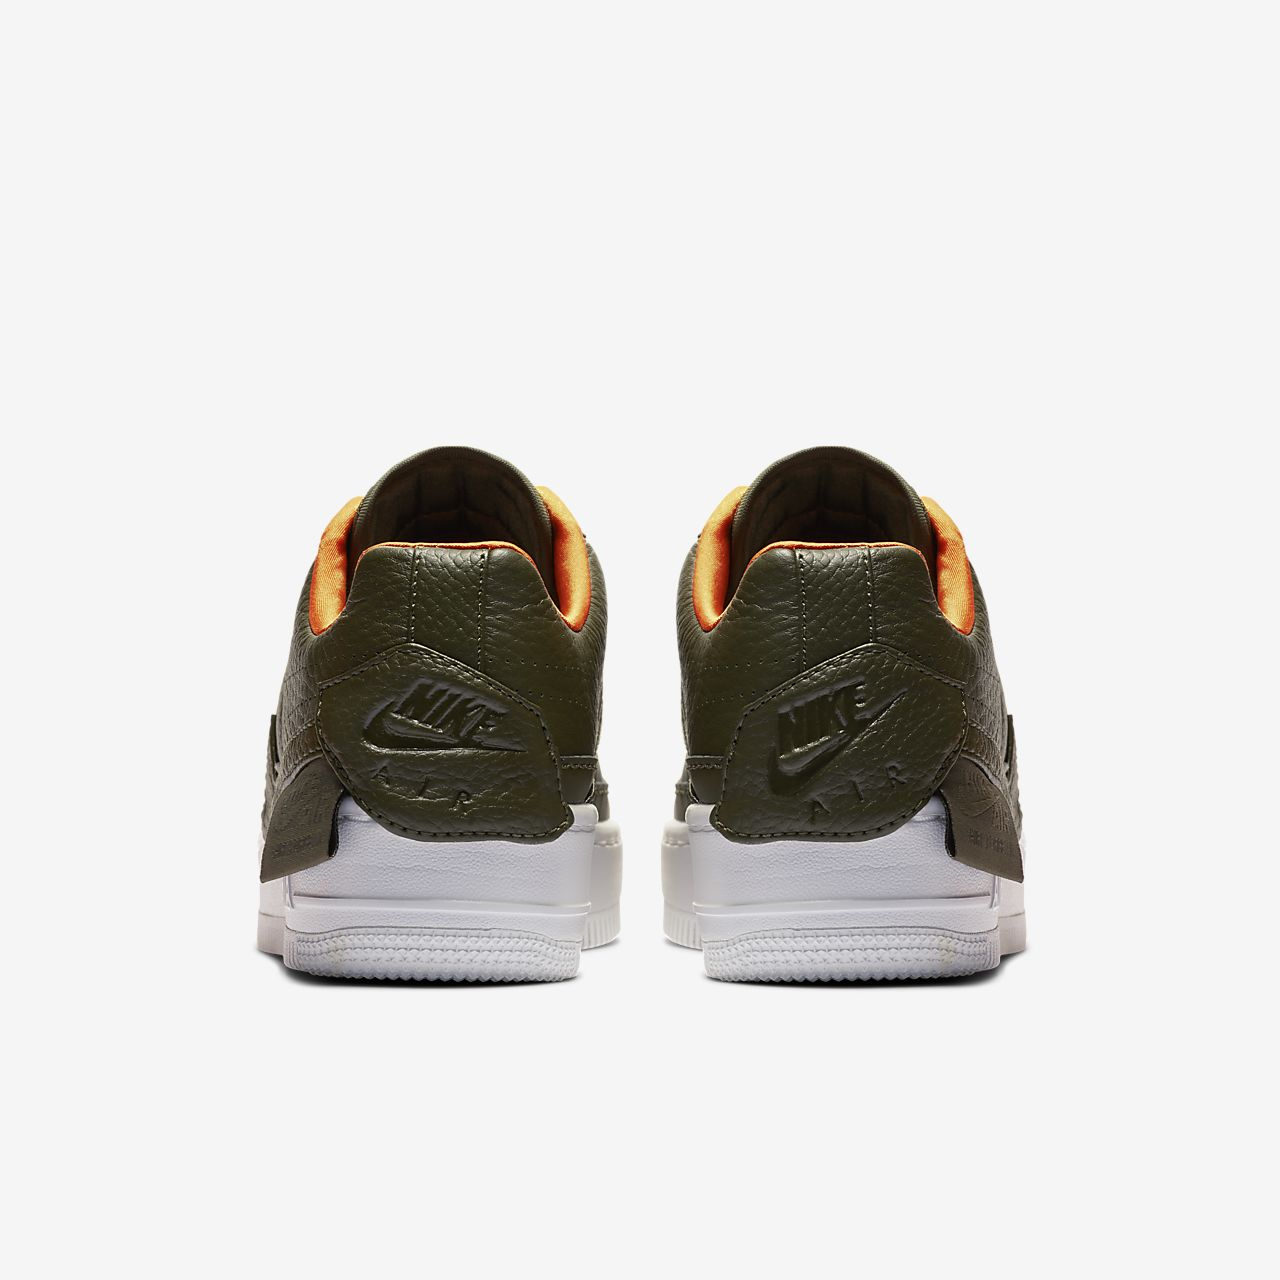 best website f8f5b 0248a ... Sko för kvinnor Nike Air Force 1 Jester XX Premium